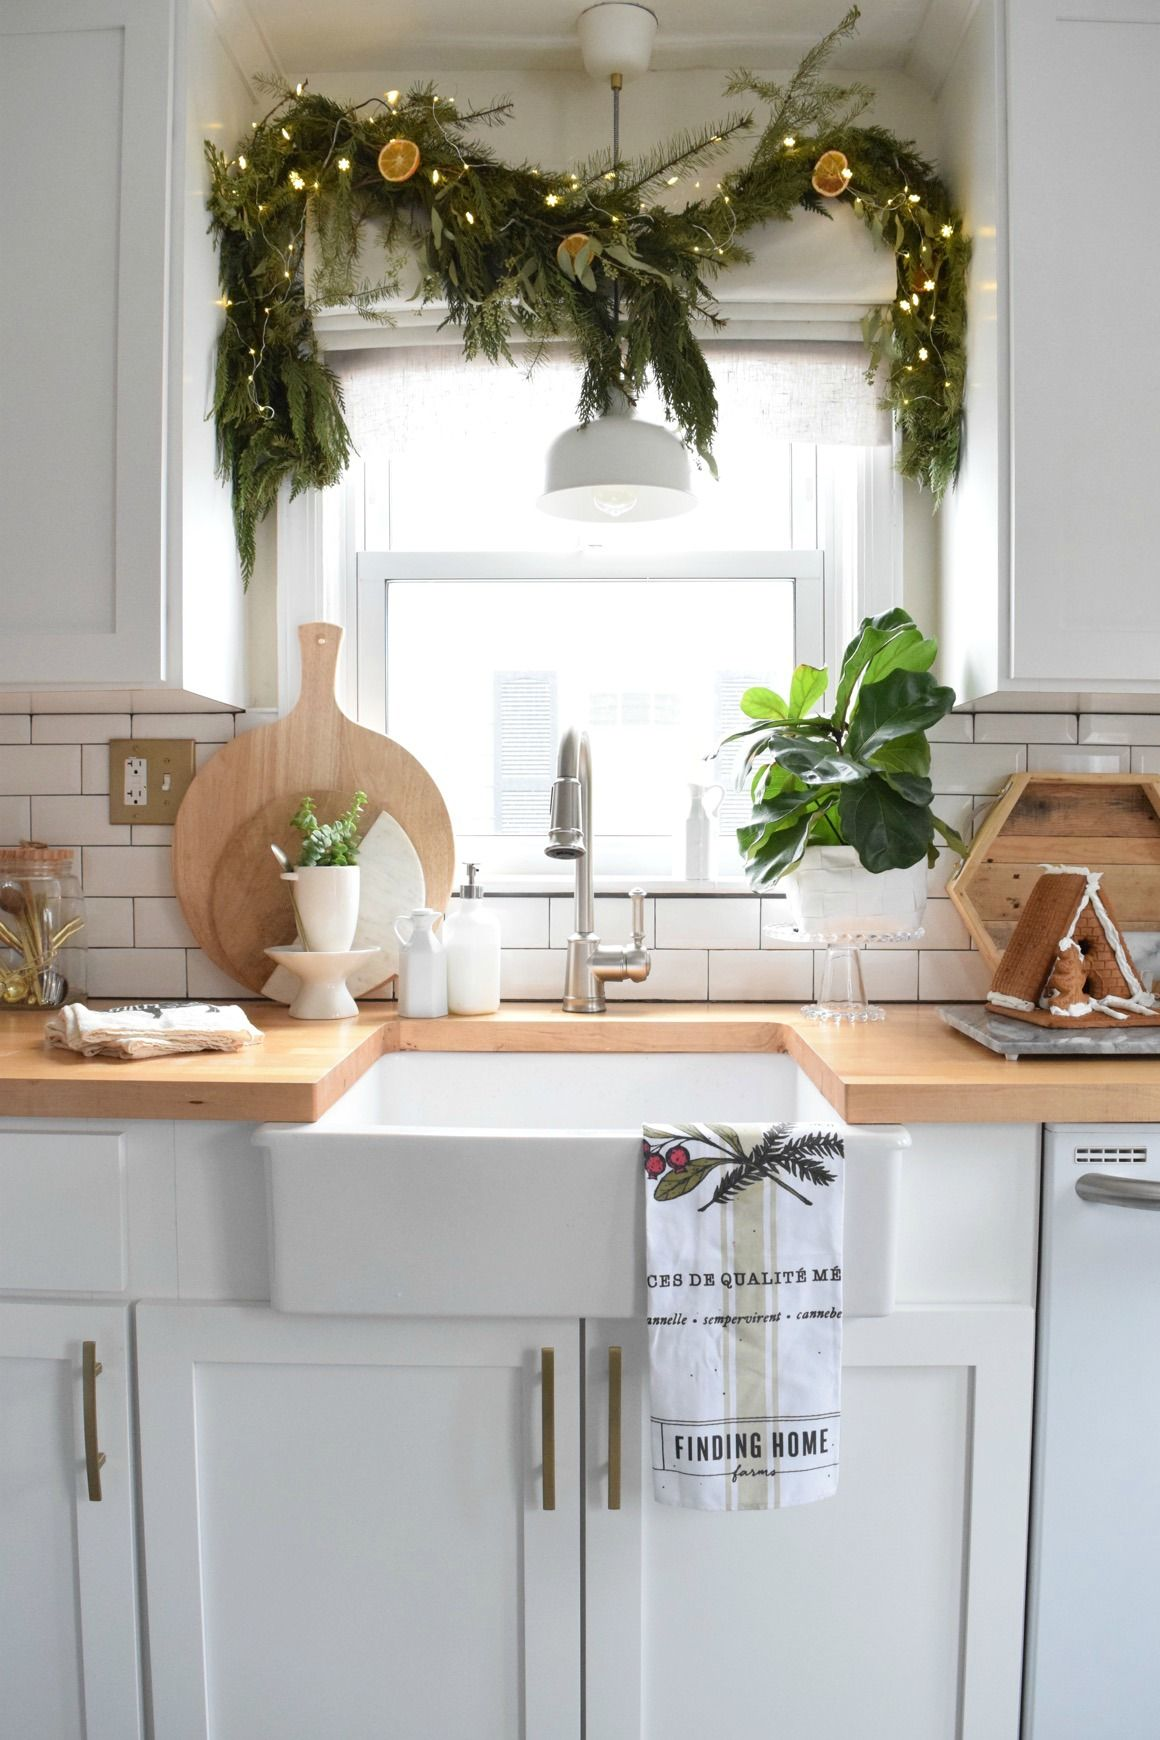 holiday house walk 2016 from our connecticut cape with images christmas kitchen decor on kitchen cabinets xmas decor id=58245